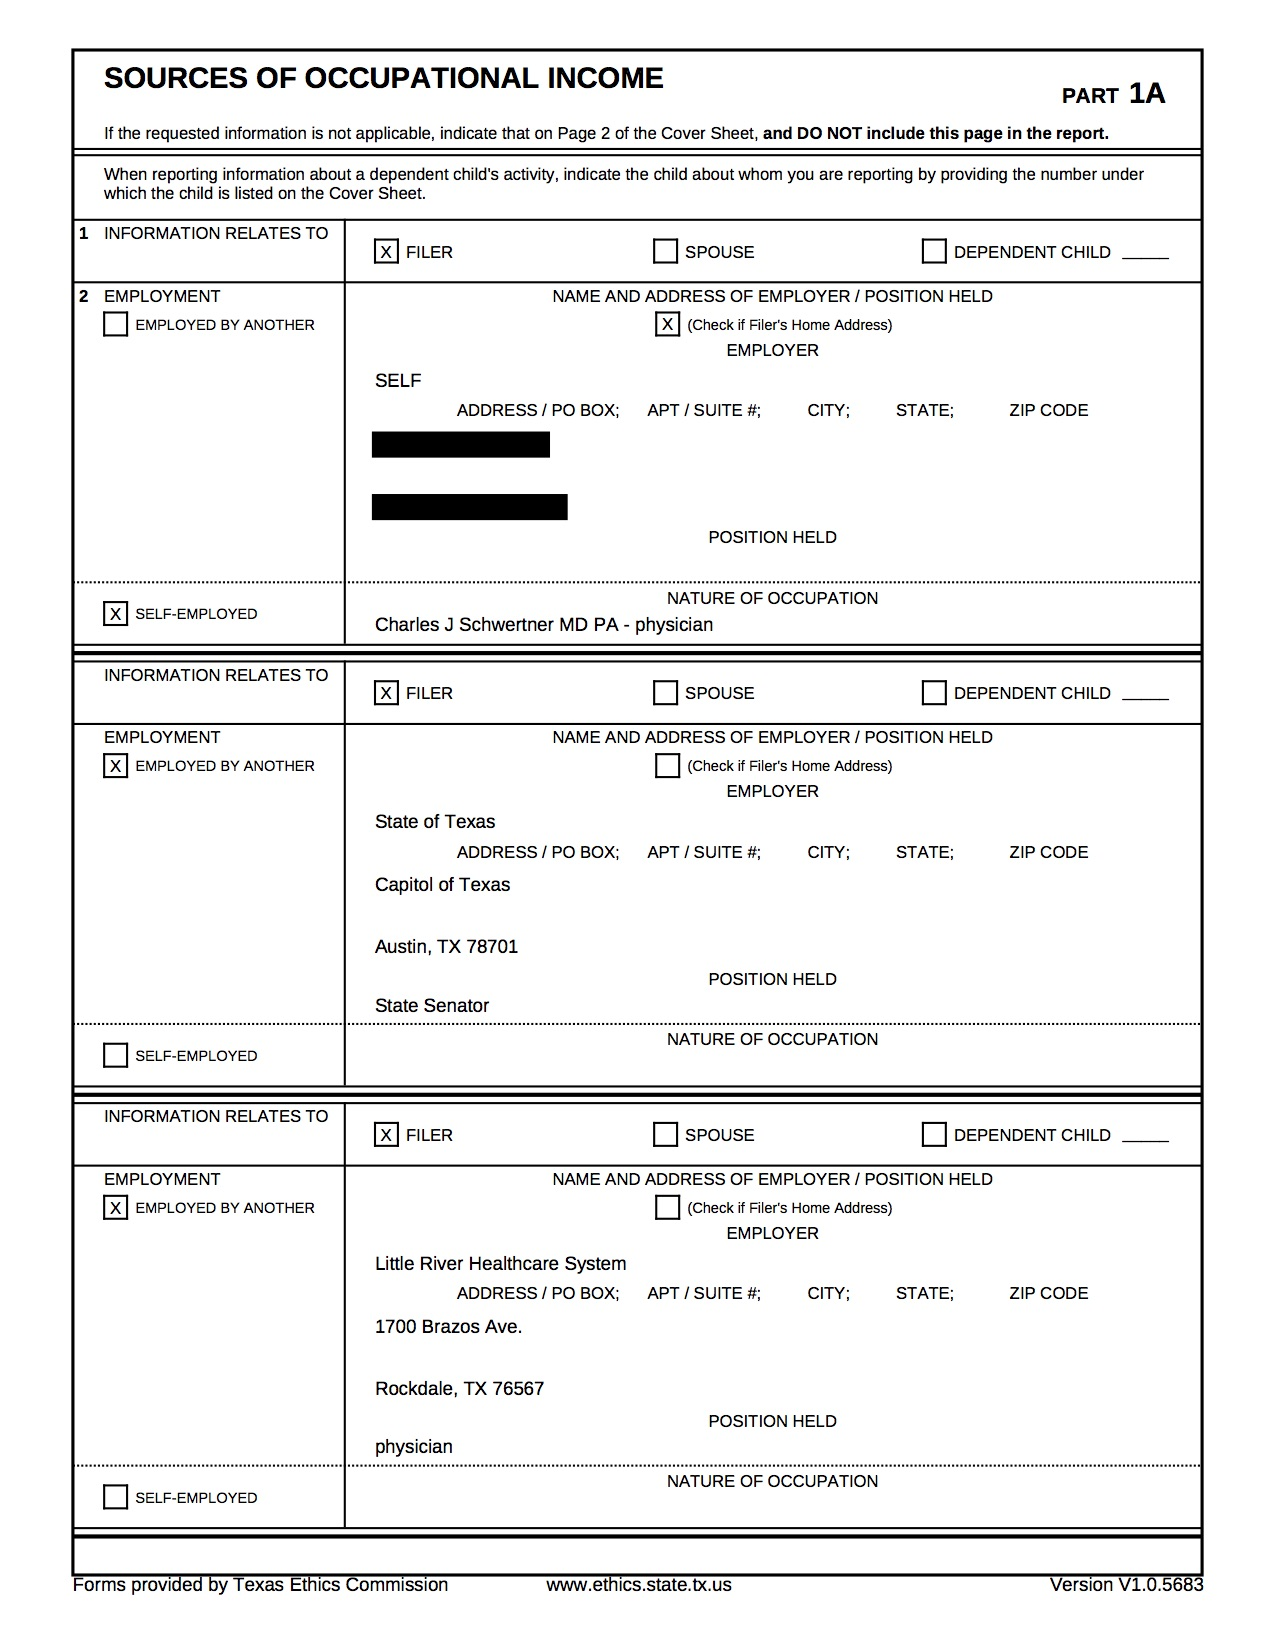 Sen. Charles Schwertner's 2018 personal financial statement filed with the Texas Ethics Commission shows he worked at Little River Heathcare System in Rockdale, Texas.